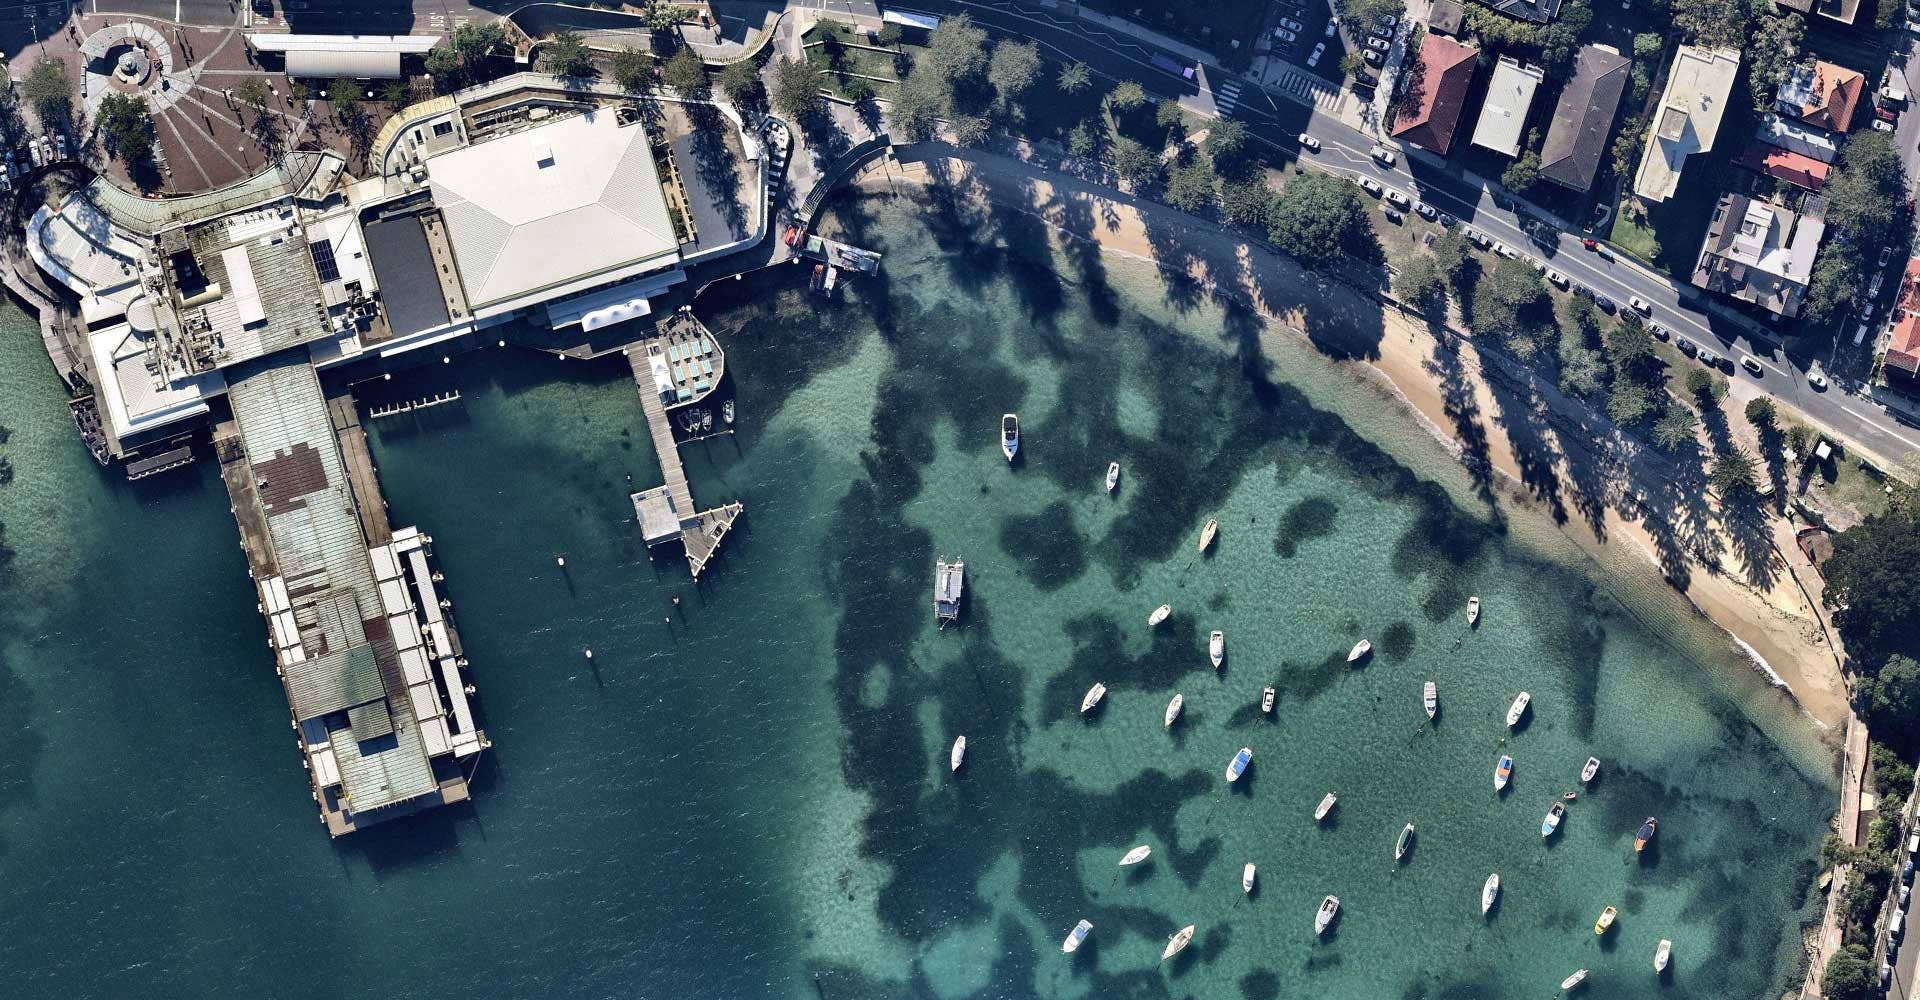 Coverage aerial waterfront image of Manly, New South Wales